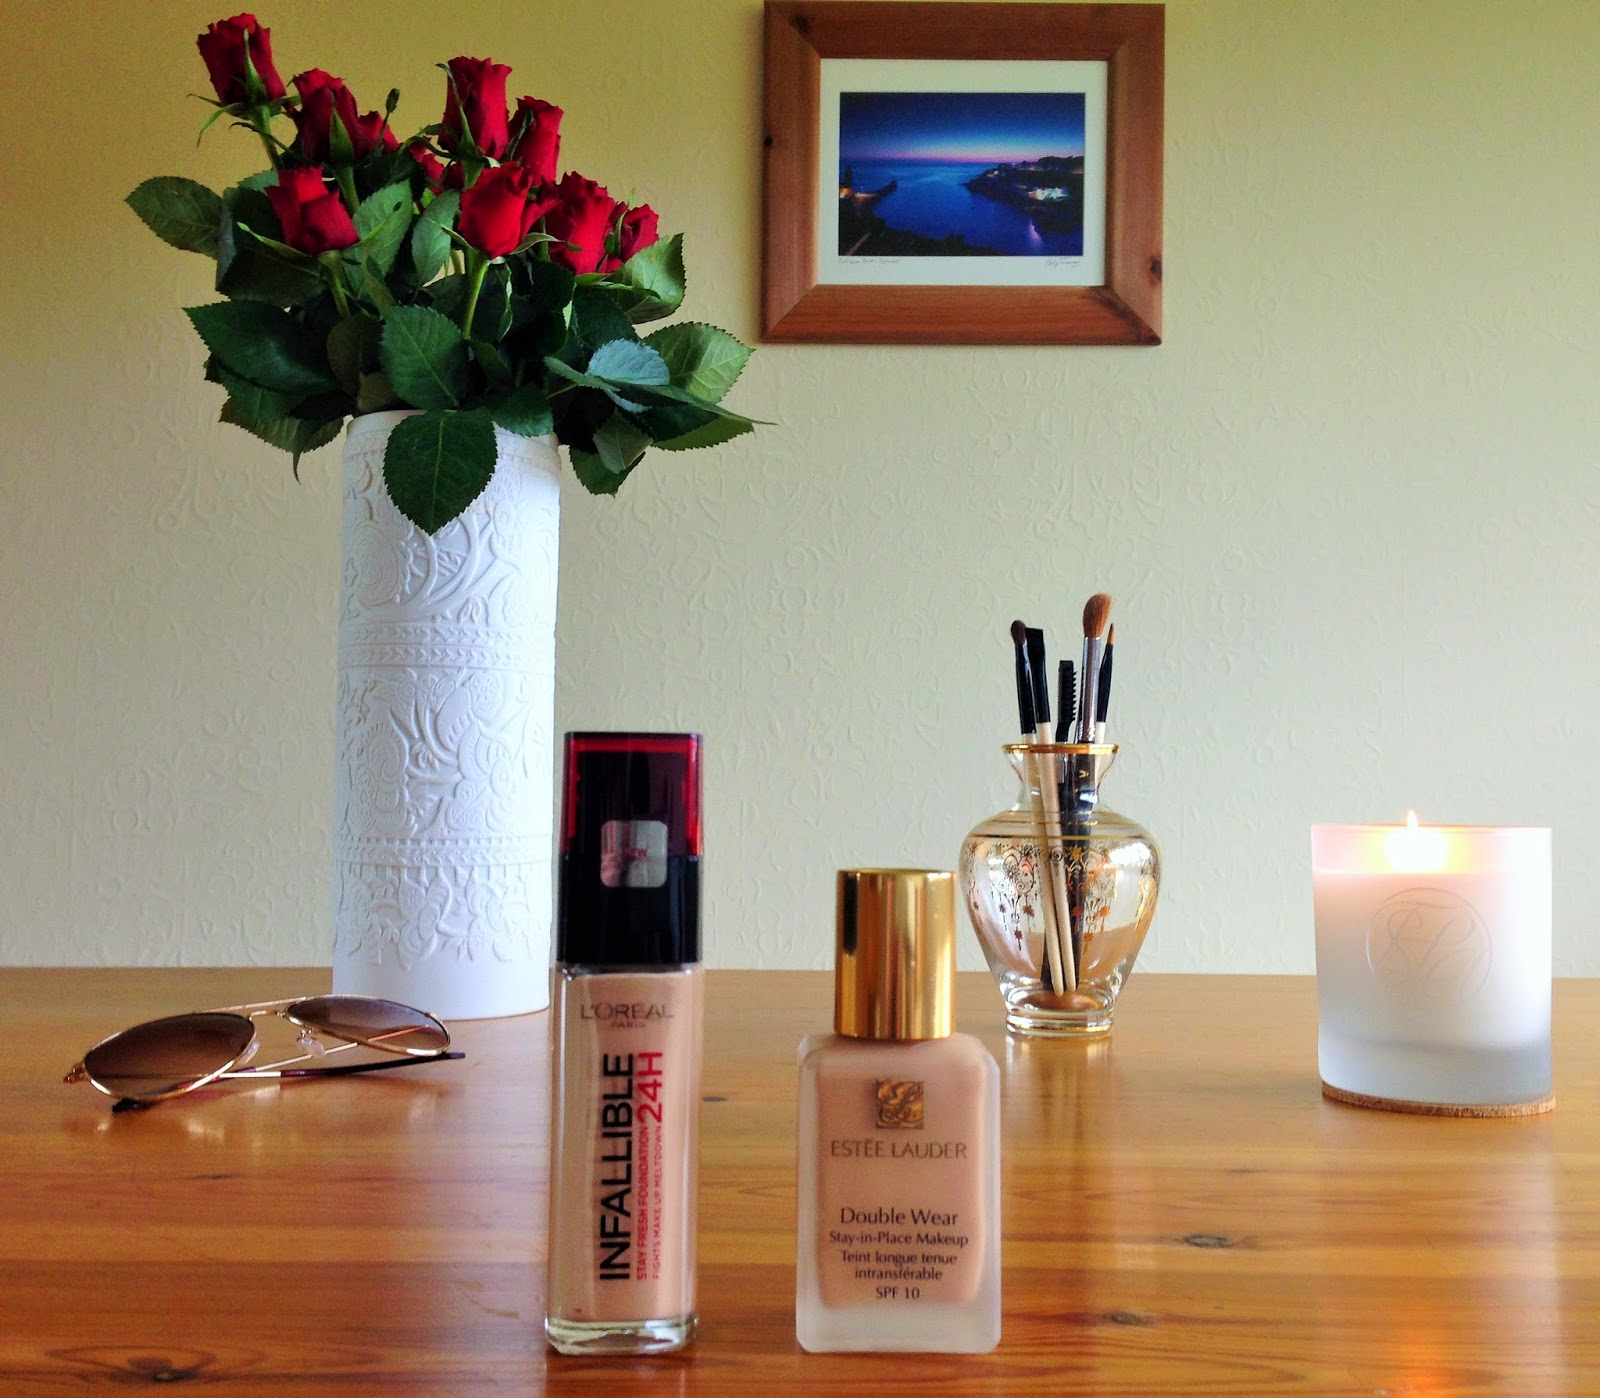 L'Oreal Infallible 24 Hour Foundation; Estee Lauder Double Wear Foundation